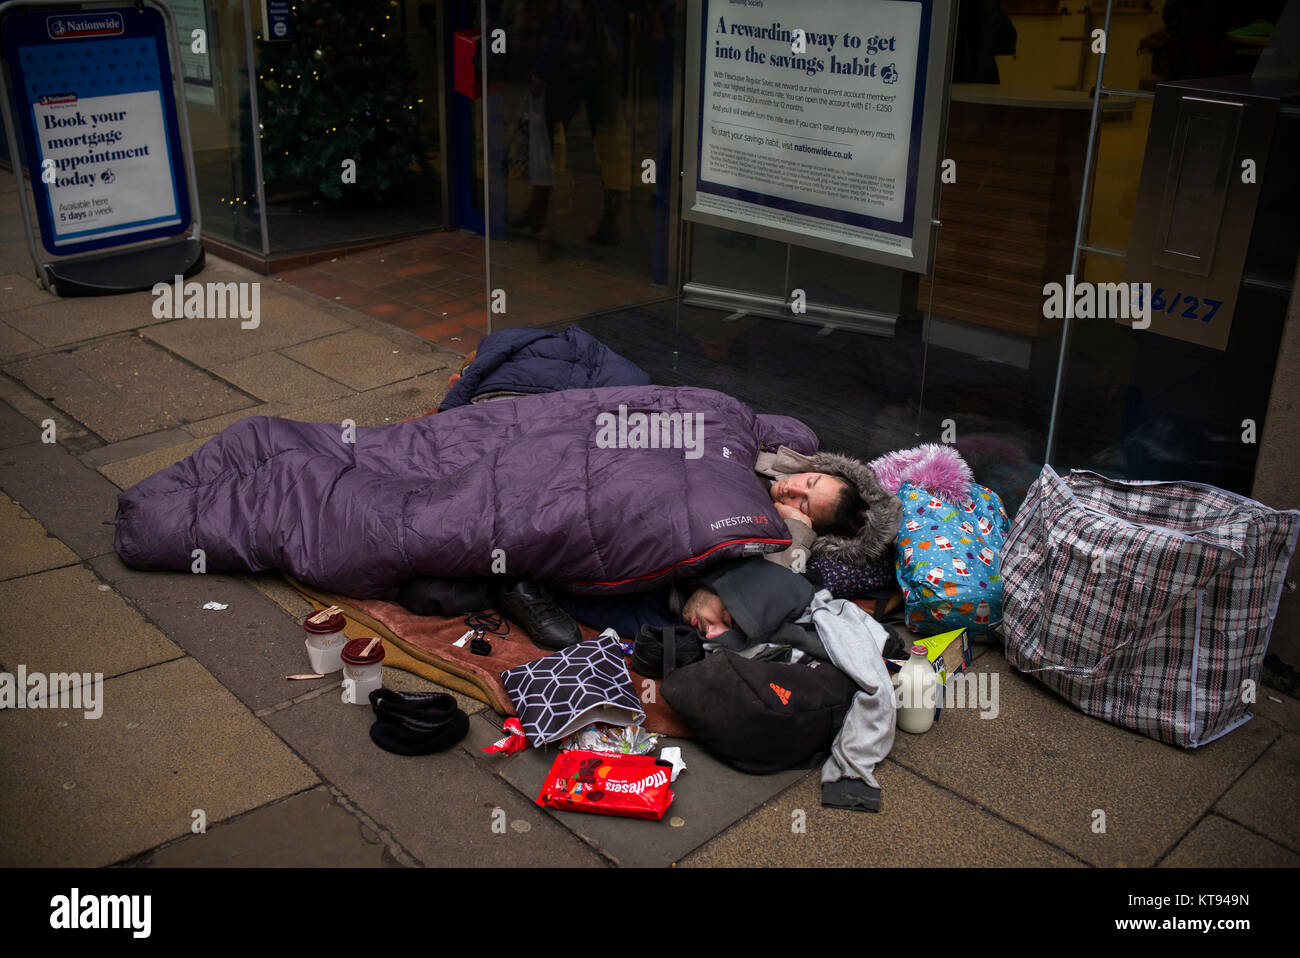 Cambridge, England, UK. 23rd Dec, 2017. Rough sleepers in Cambridge, 23 December 2017. Homeless rough sleepers in - Stock Image